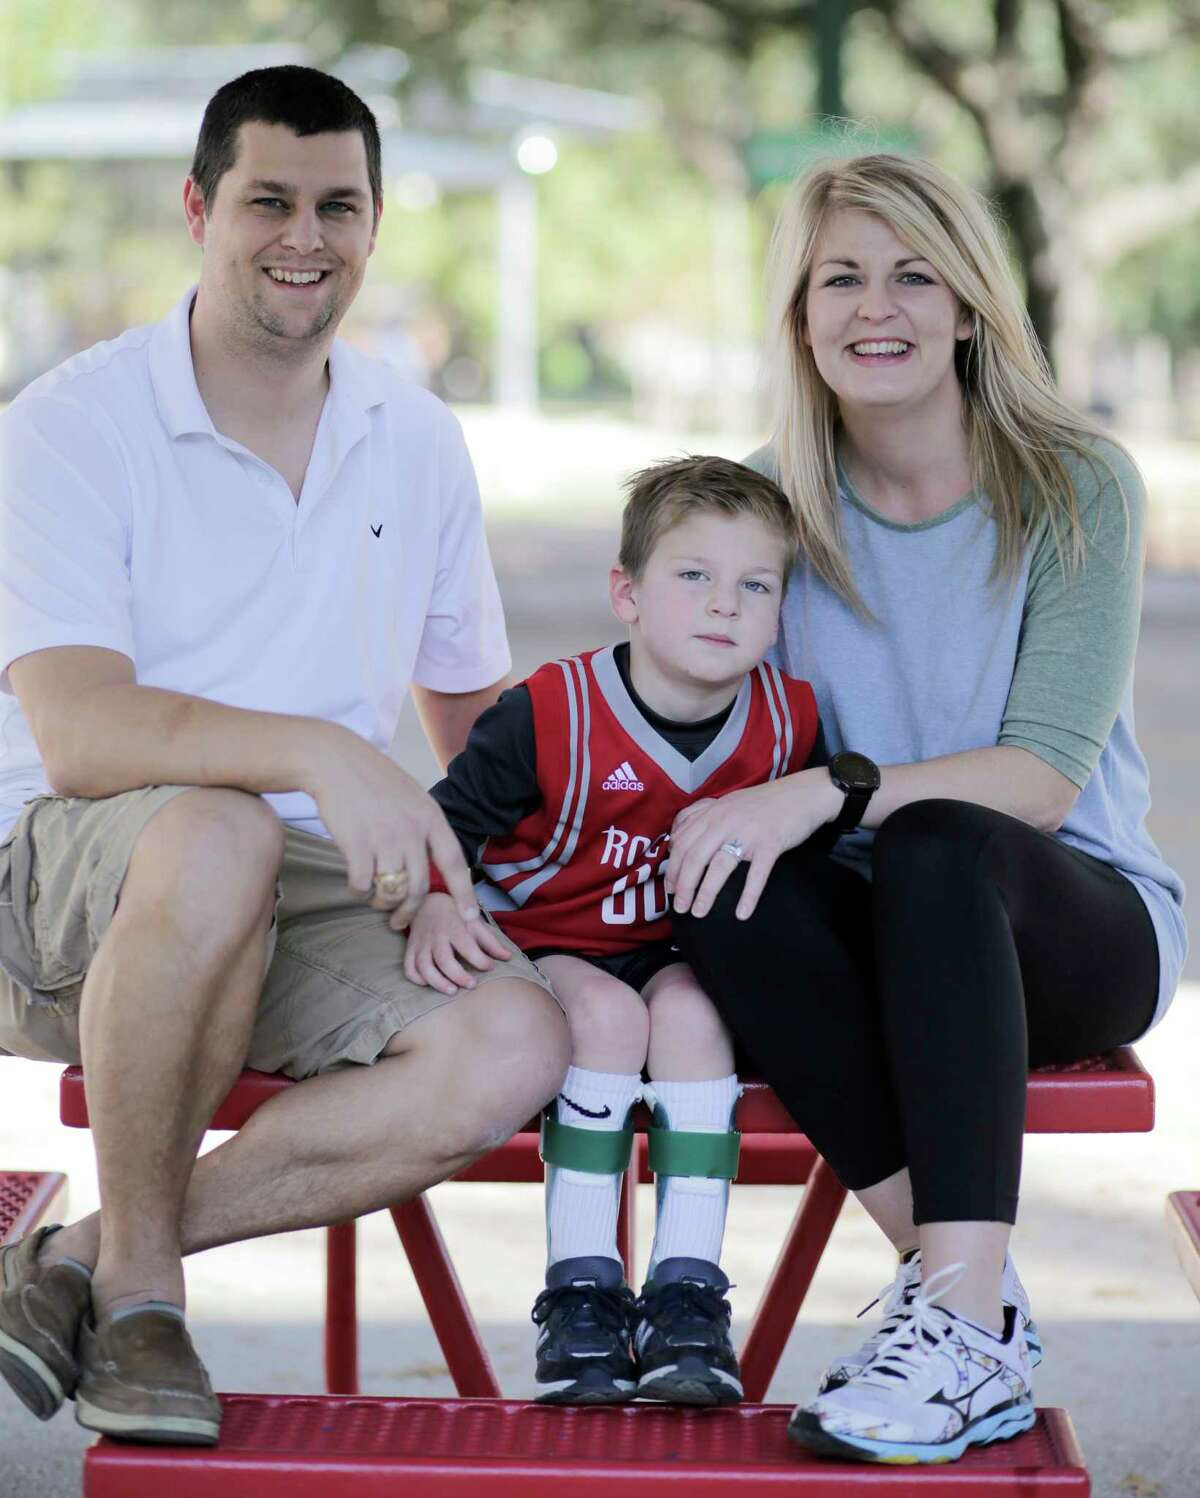 Jackson Raygor, 4, with his parents Joshua and Kyla on Saturday, Dec. 2, 2017, in Houston.